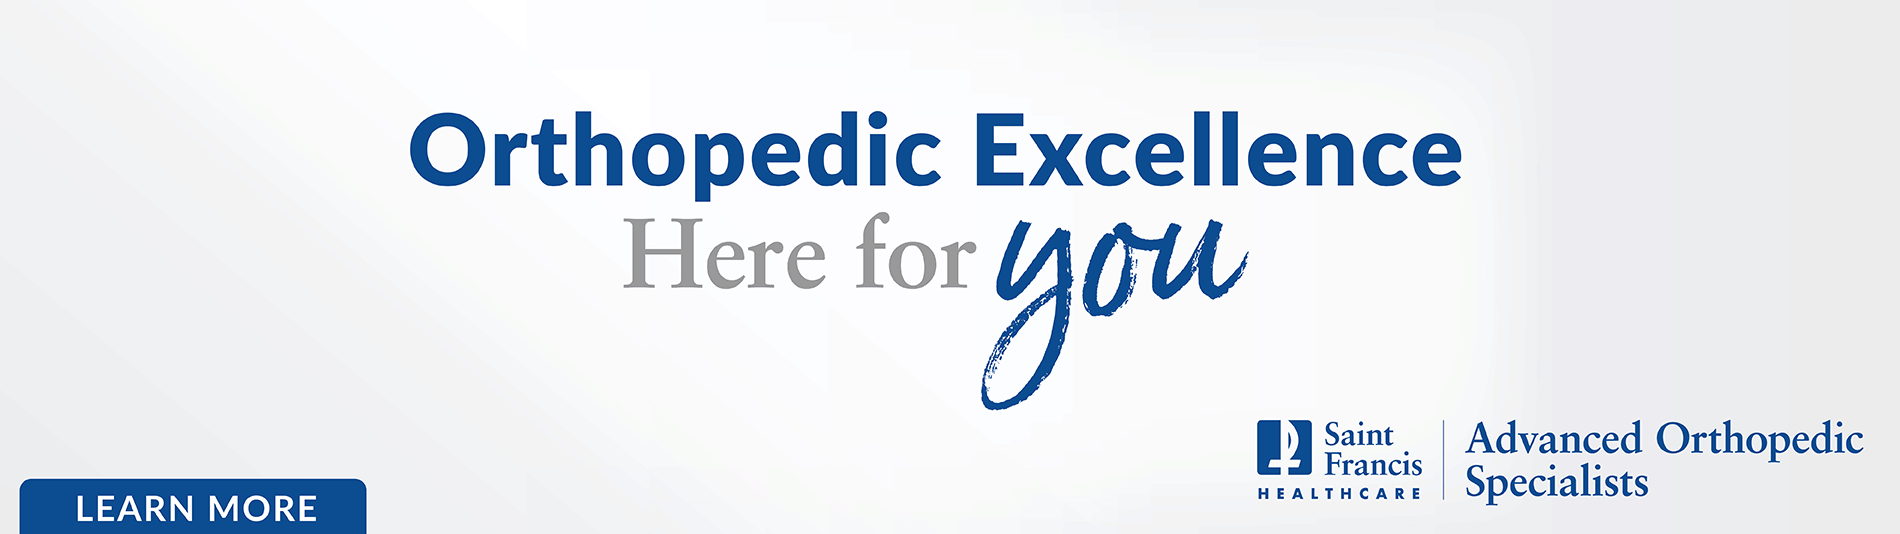 Orthopedic Excellence, Here for You - Learn more